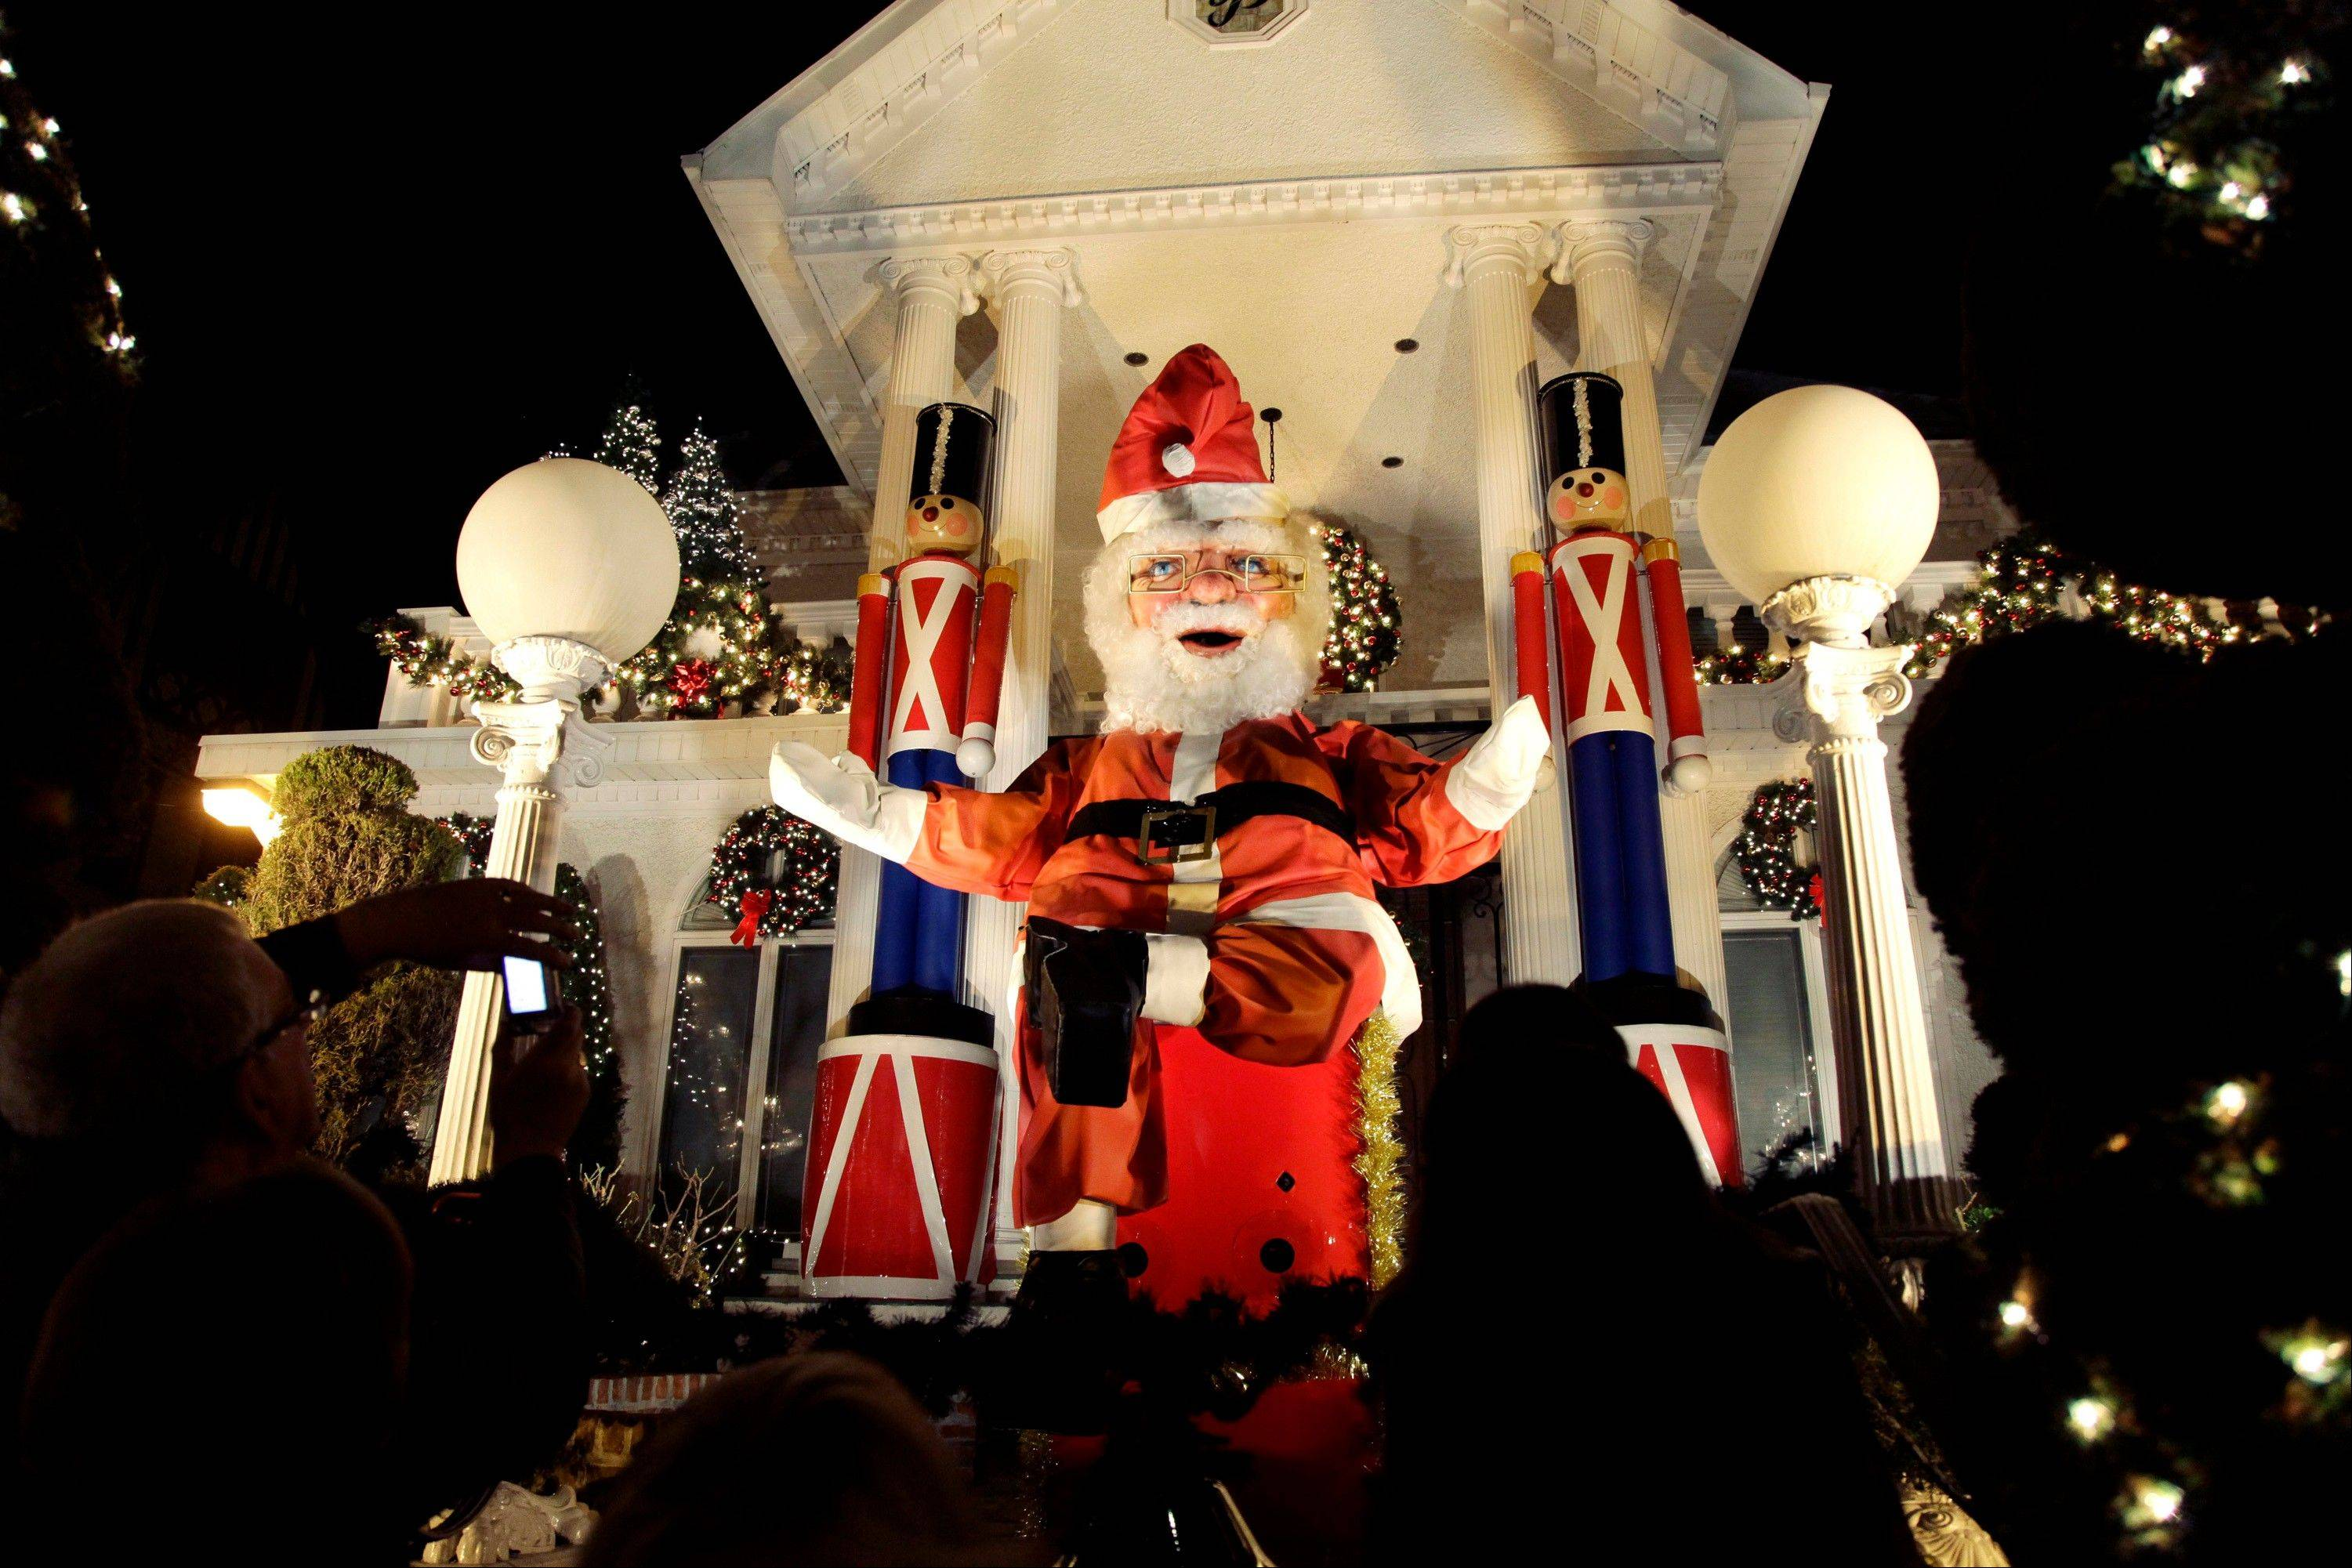 A giant Santa Claus decorates a home in Brooklyn.